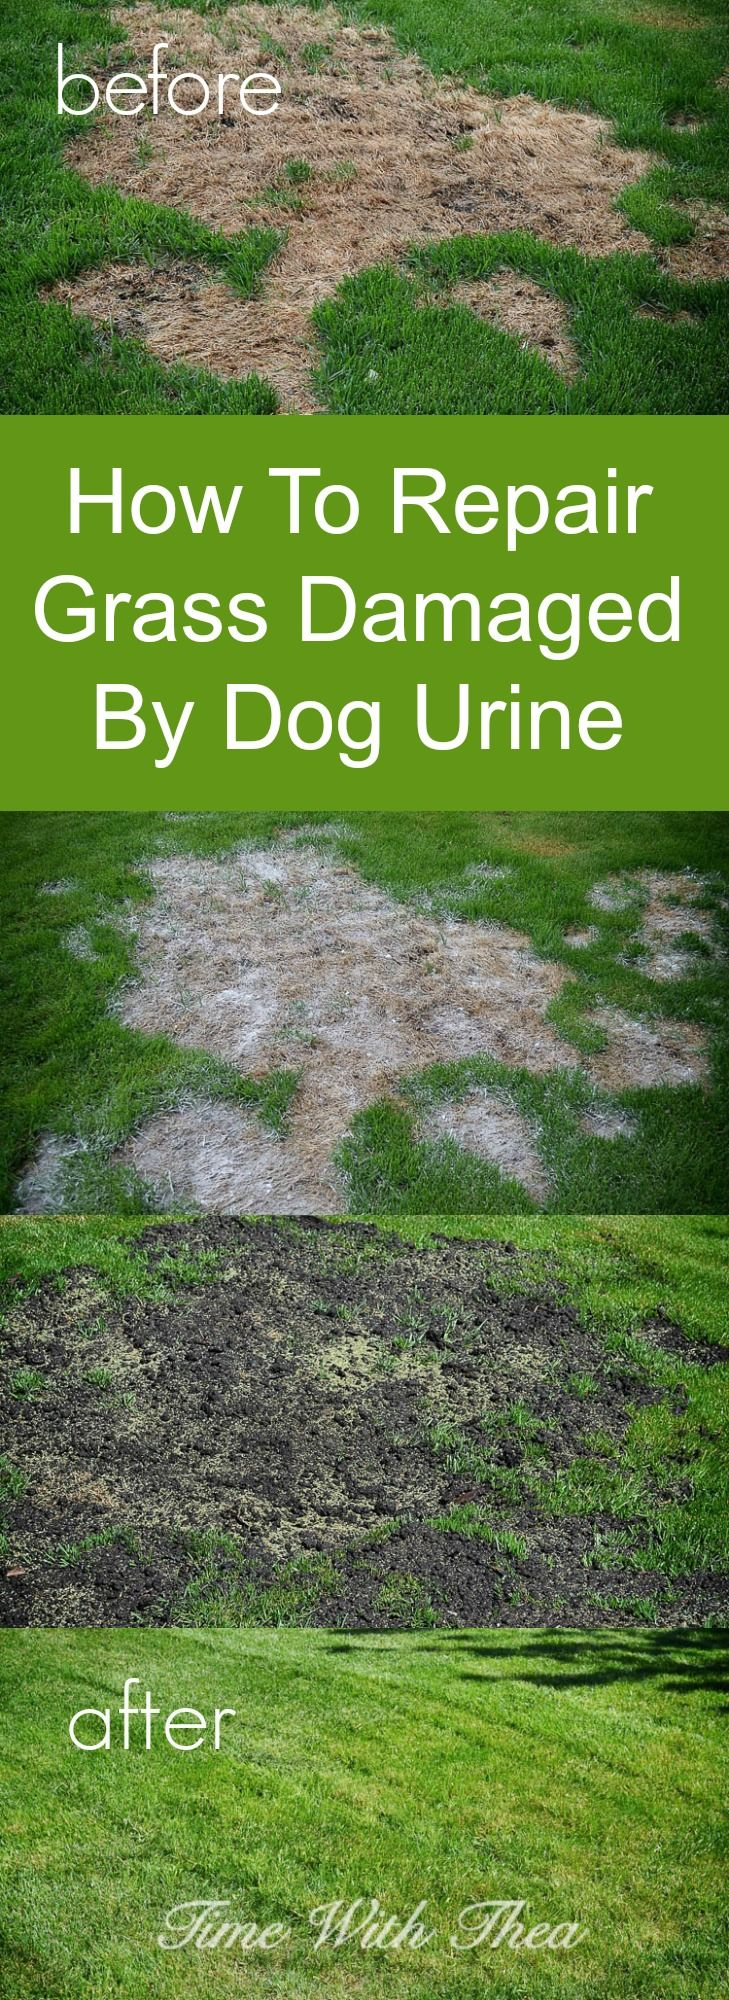 The Easiest Way to Repair Grass Damaged by Dogs forecasting